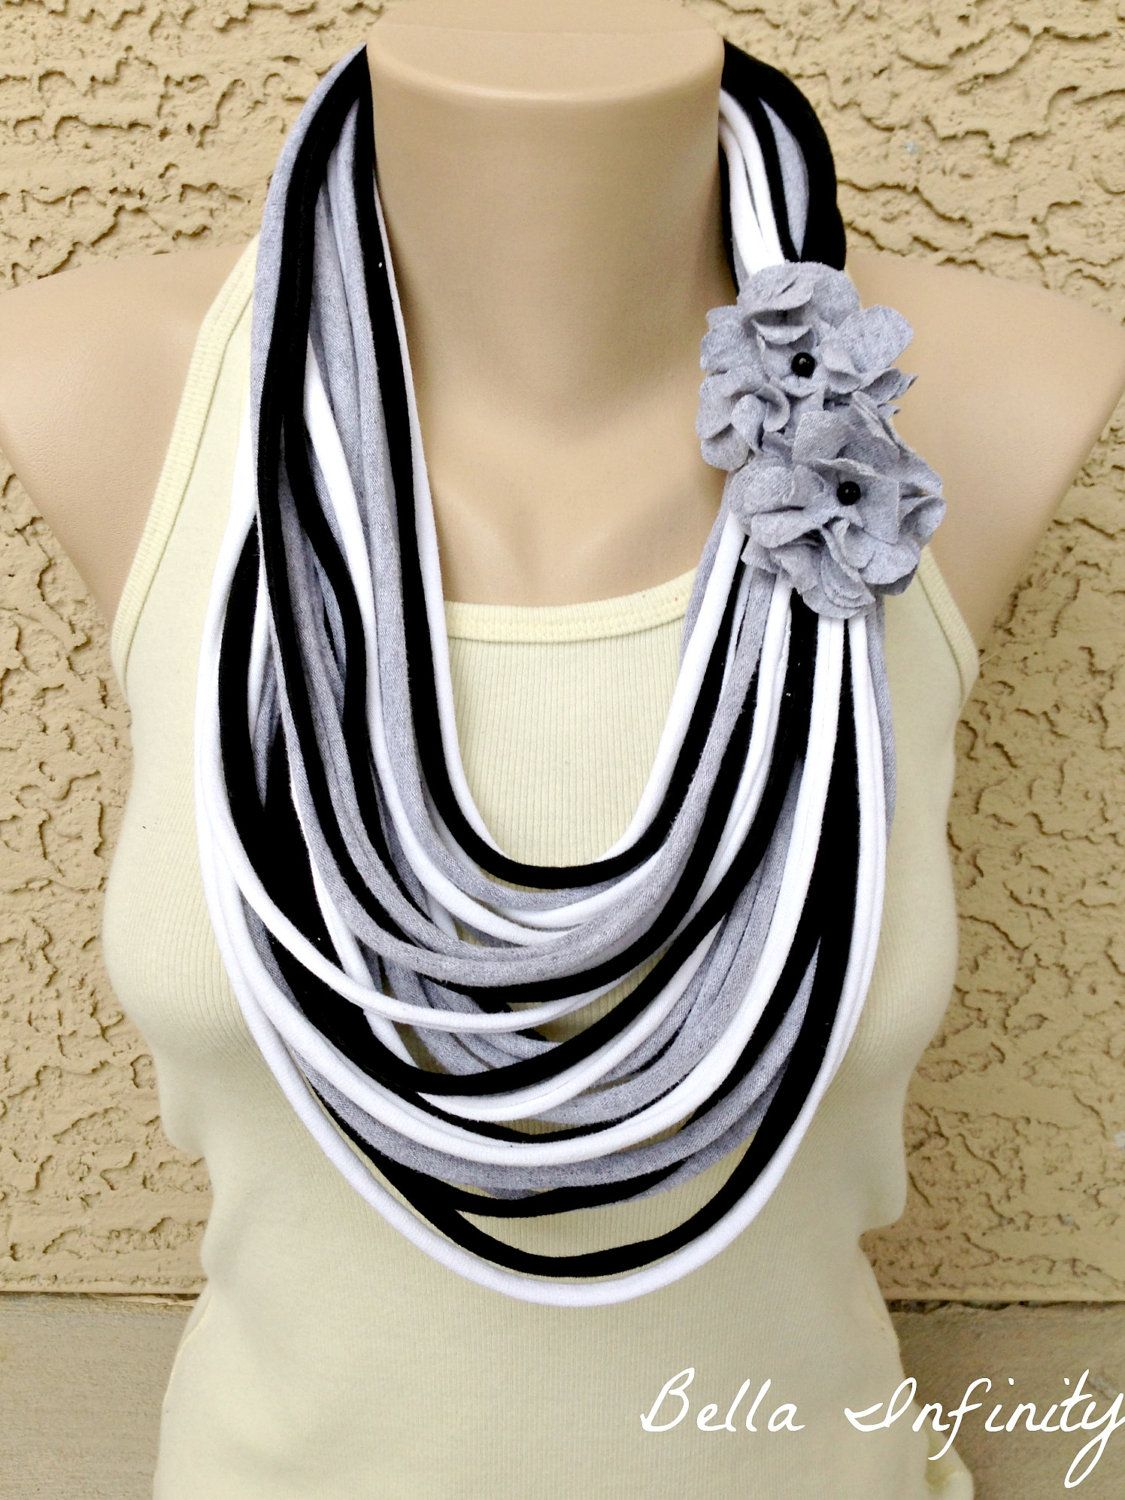 Bella Infinity Floral Scarf Flowers Black Grey White Up-Cycled ...